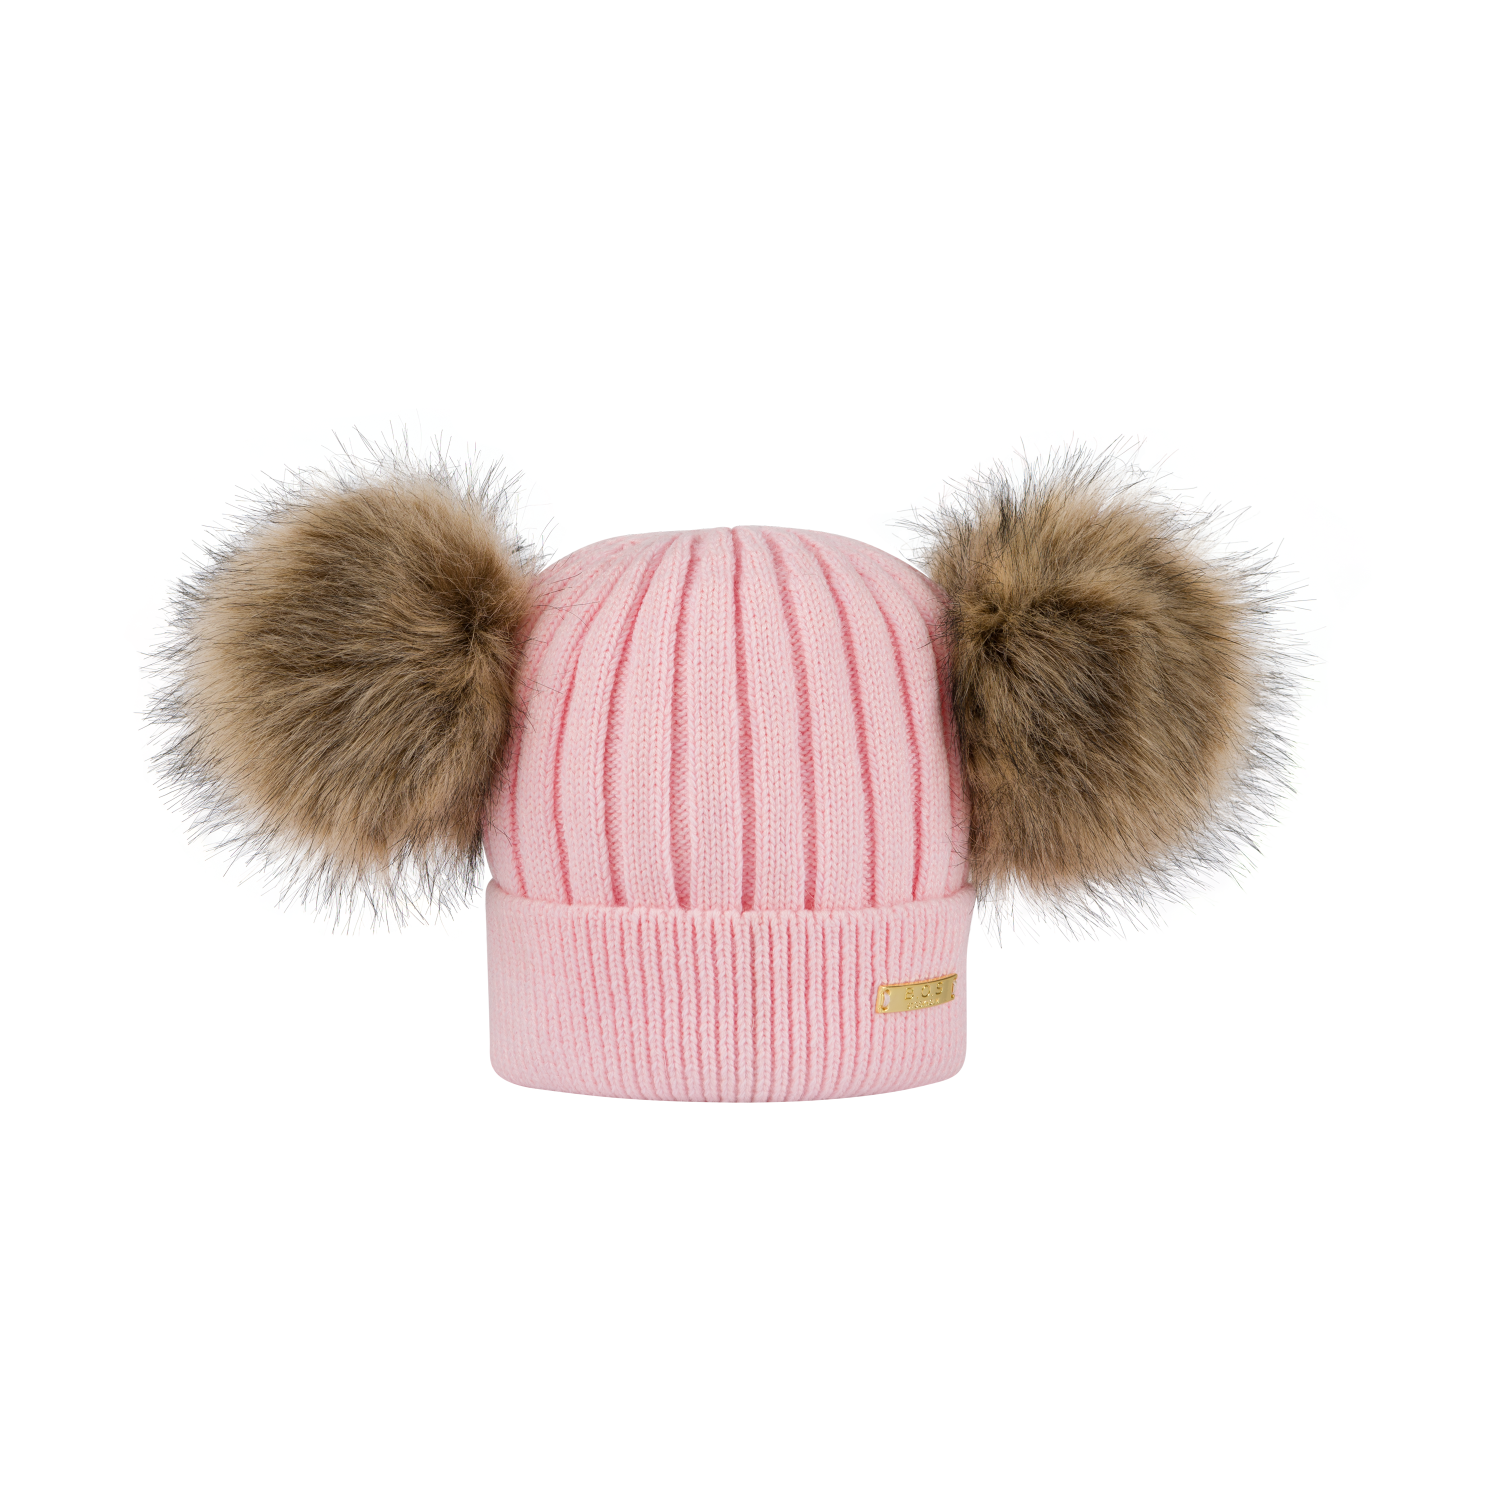 Knitted winter hat Pink